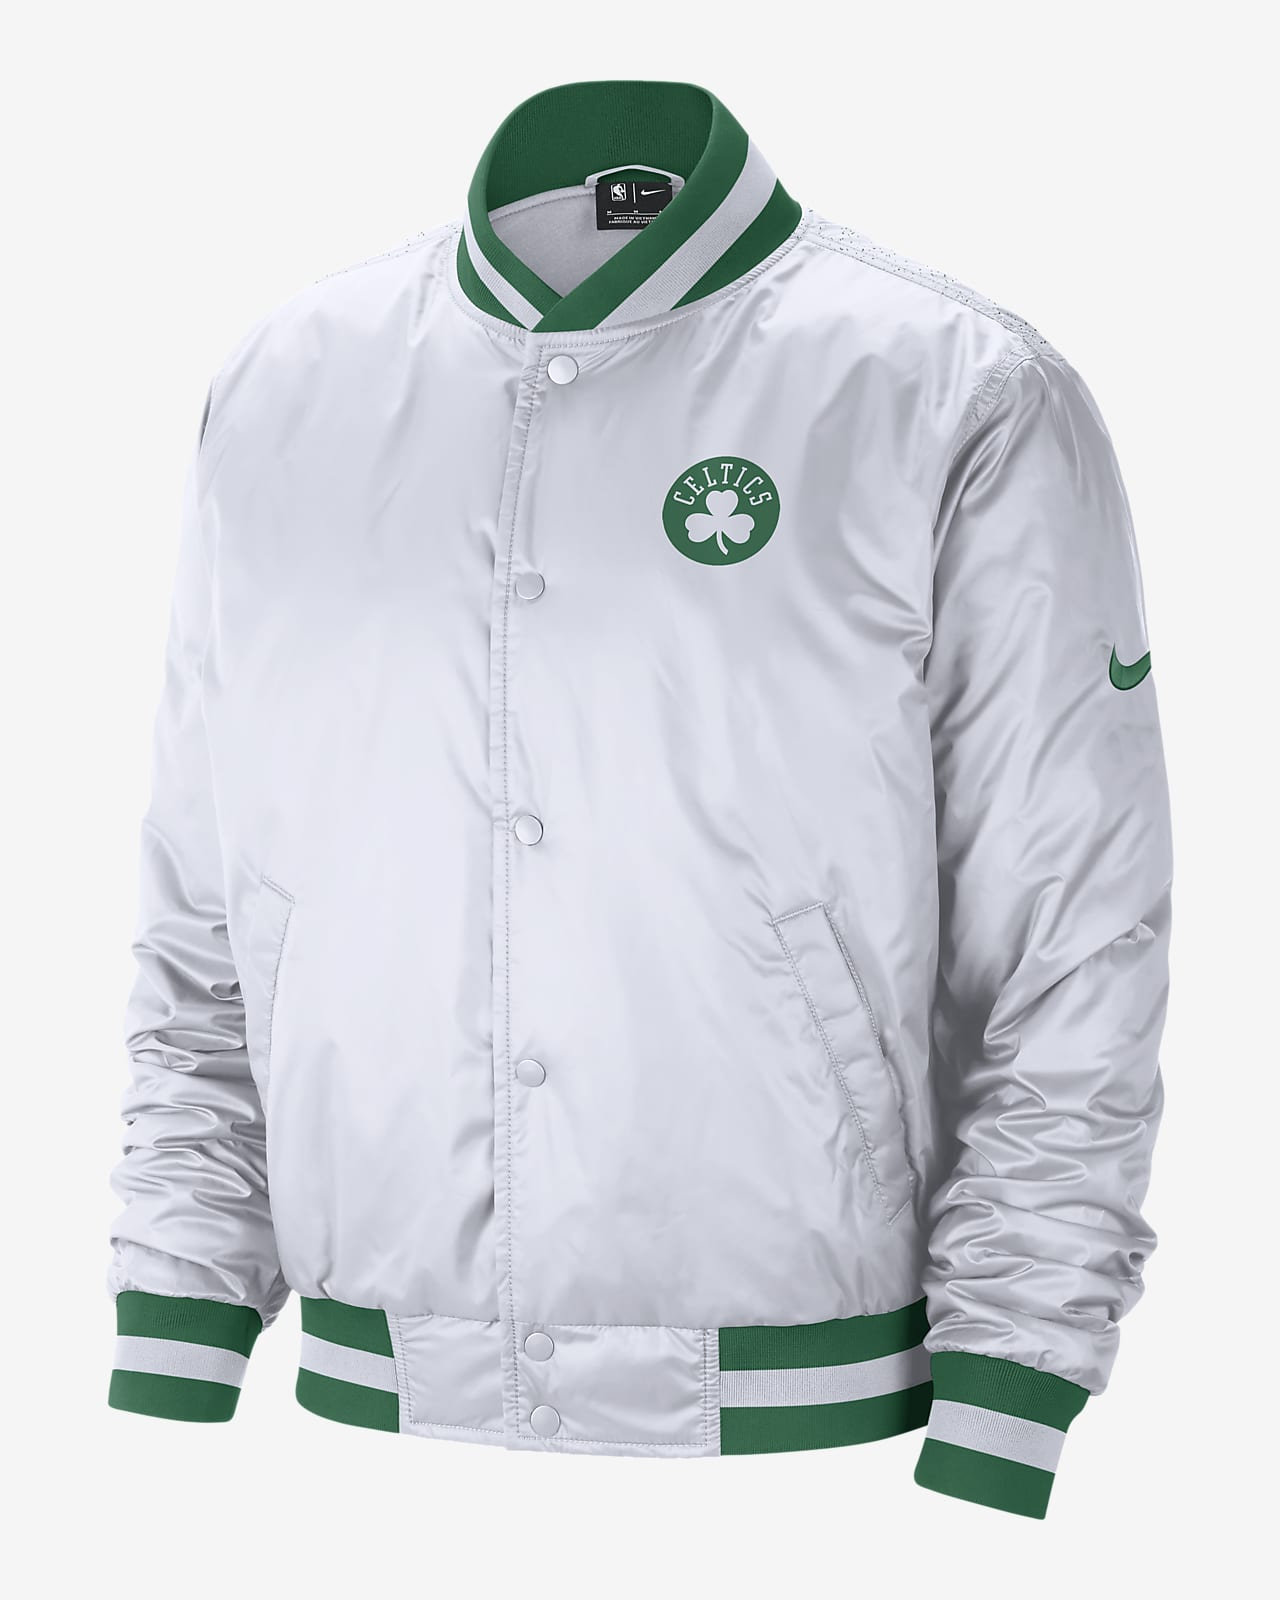 Boston Celtics City Edition Courtside Men's Nike NBA Jacket